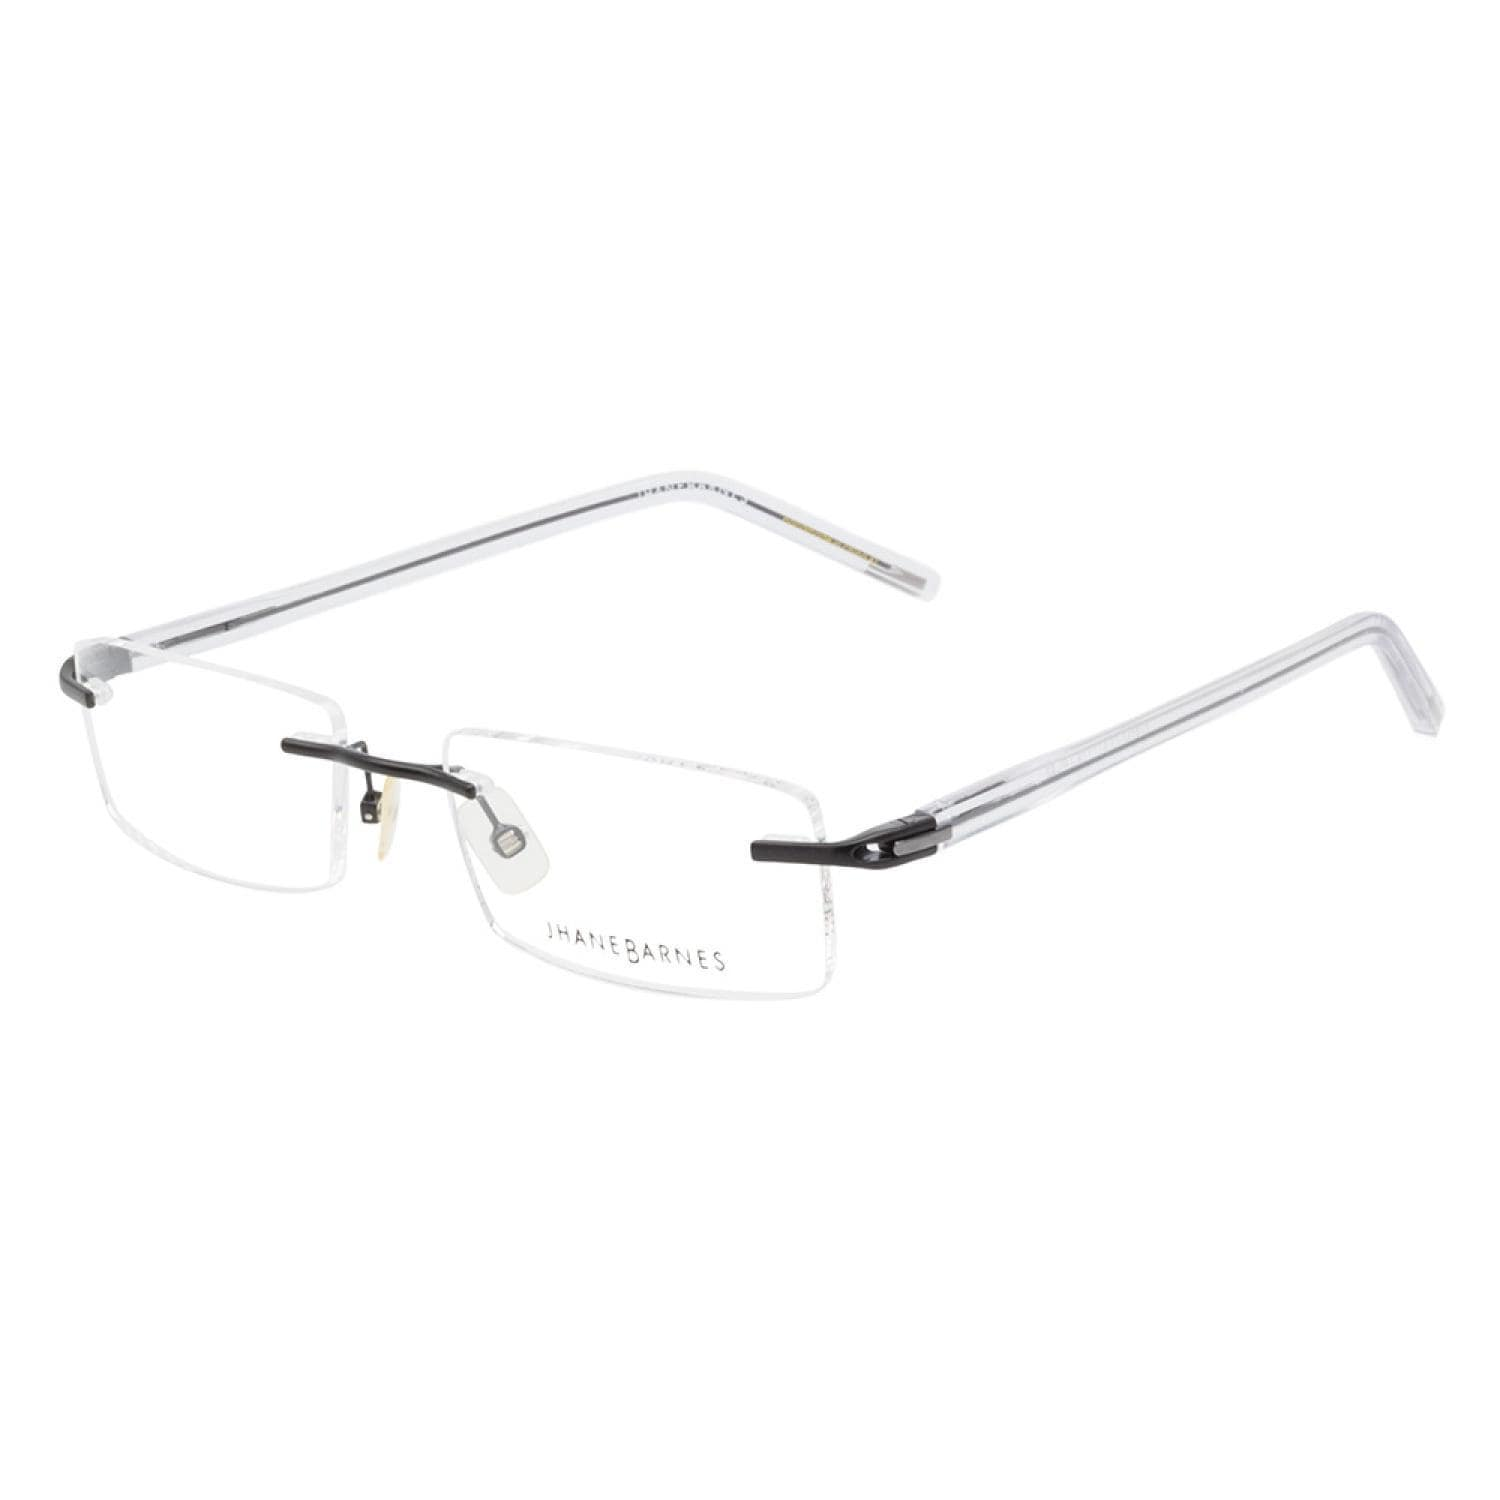 02290d3814a Shop Jhane Barnes Subset 12 BK Black Prescription Eyeglasses - Free ...